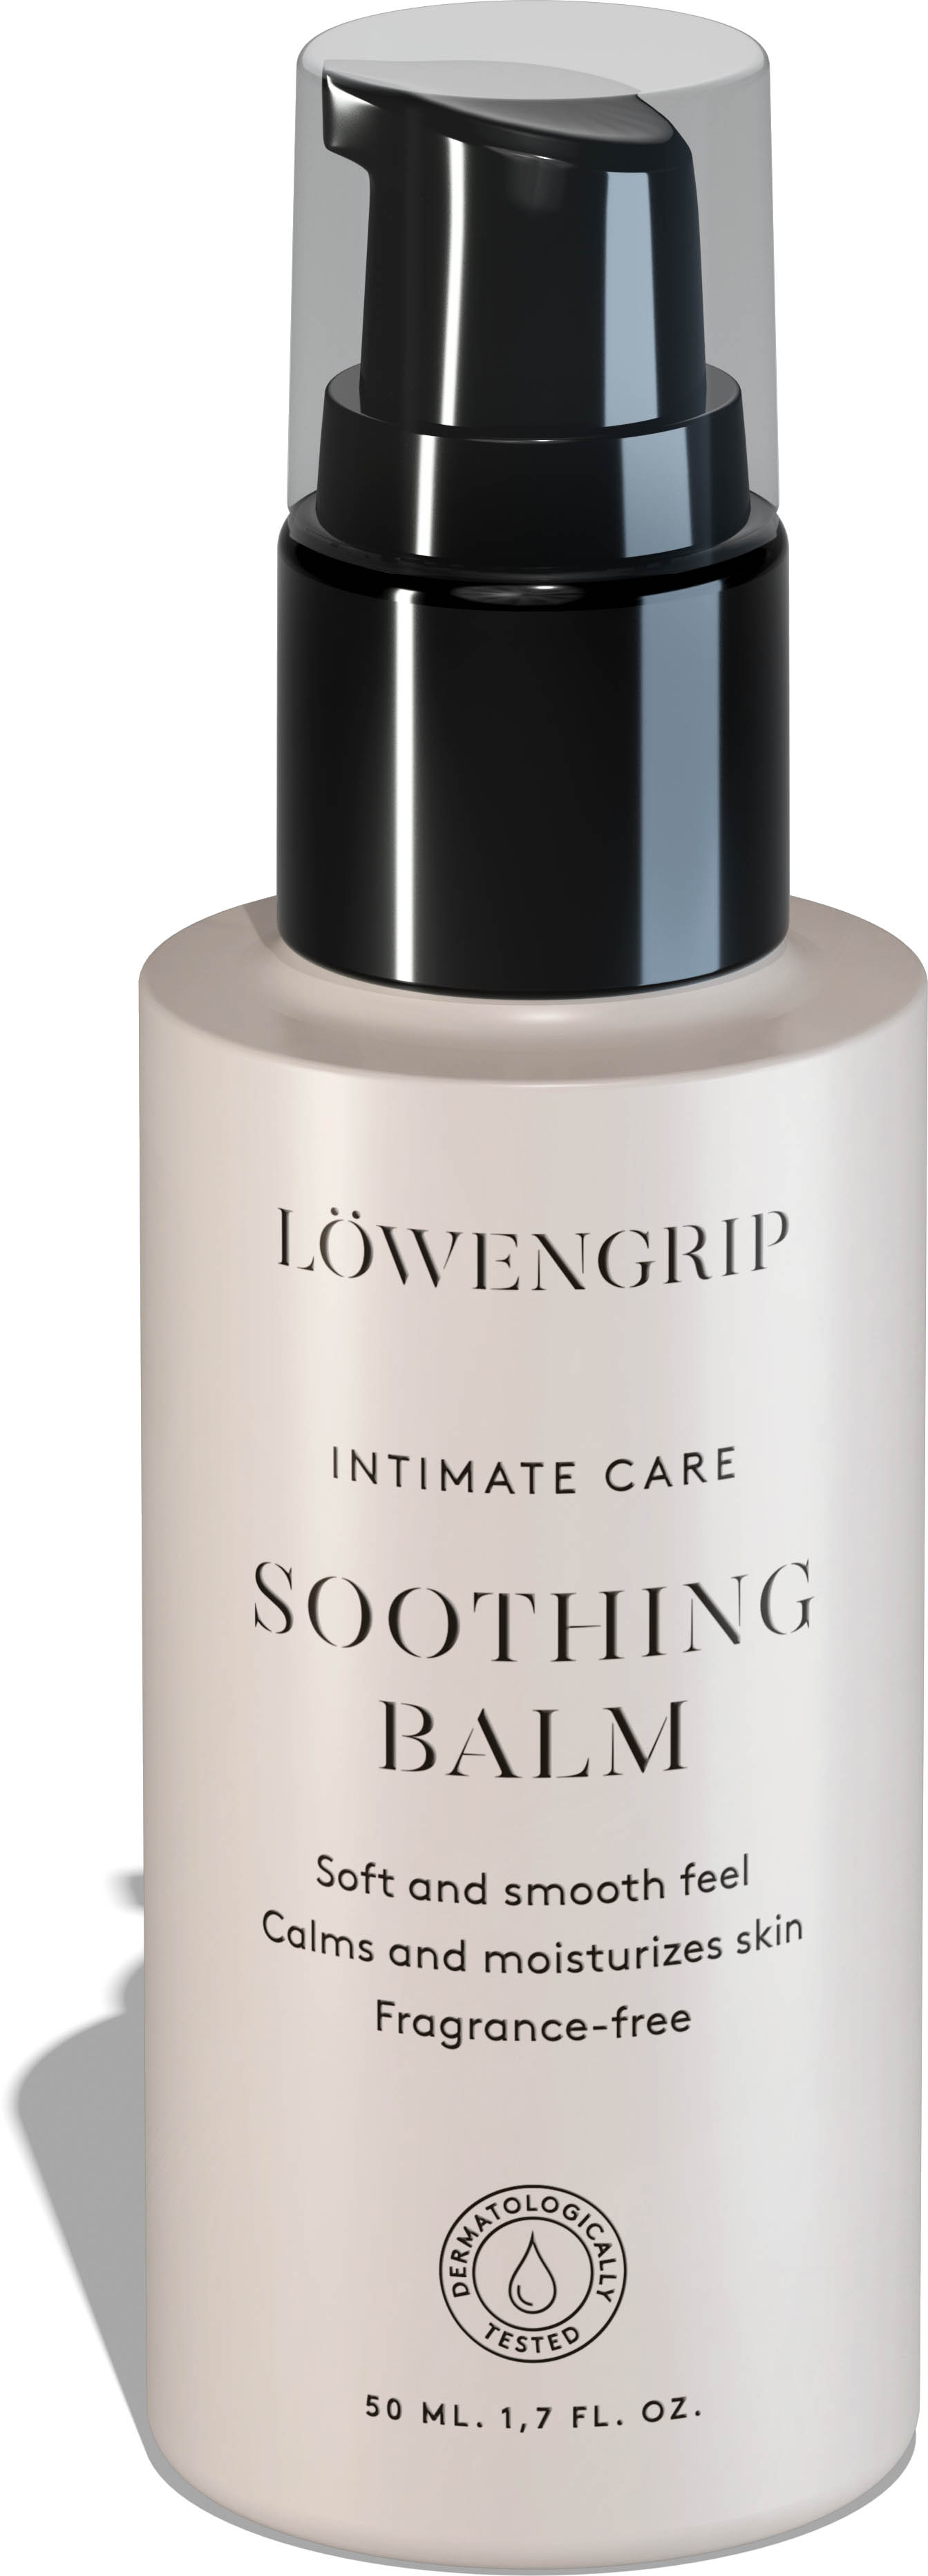 Intimate Care - Soothing Balm 50ml